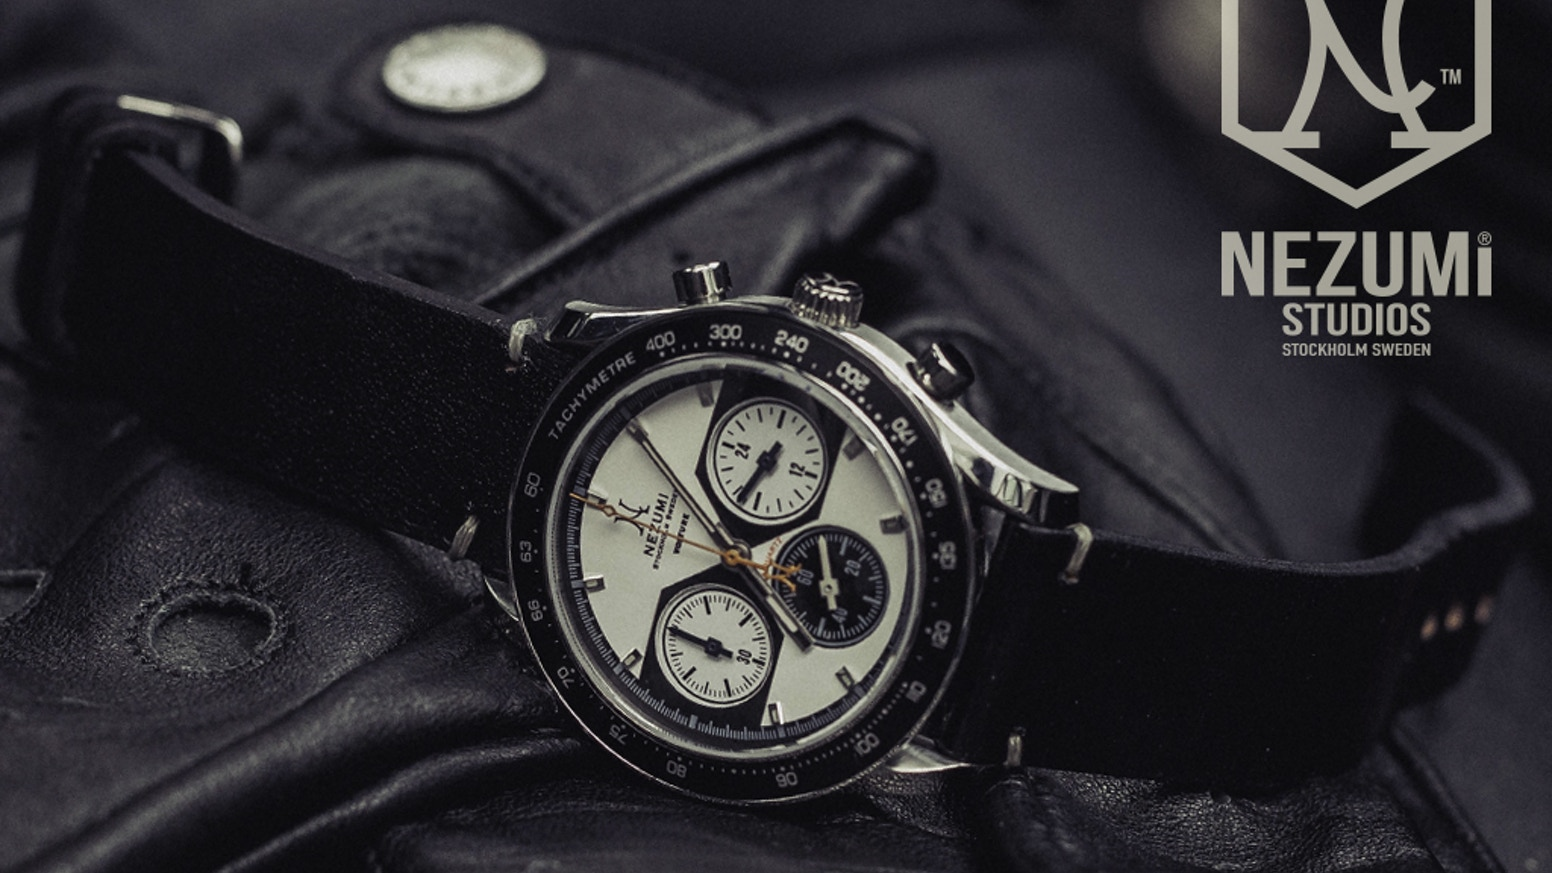 The NEZUMI® Voiture is a true classic chronograph inspired by the 60s and 70s racing era.